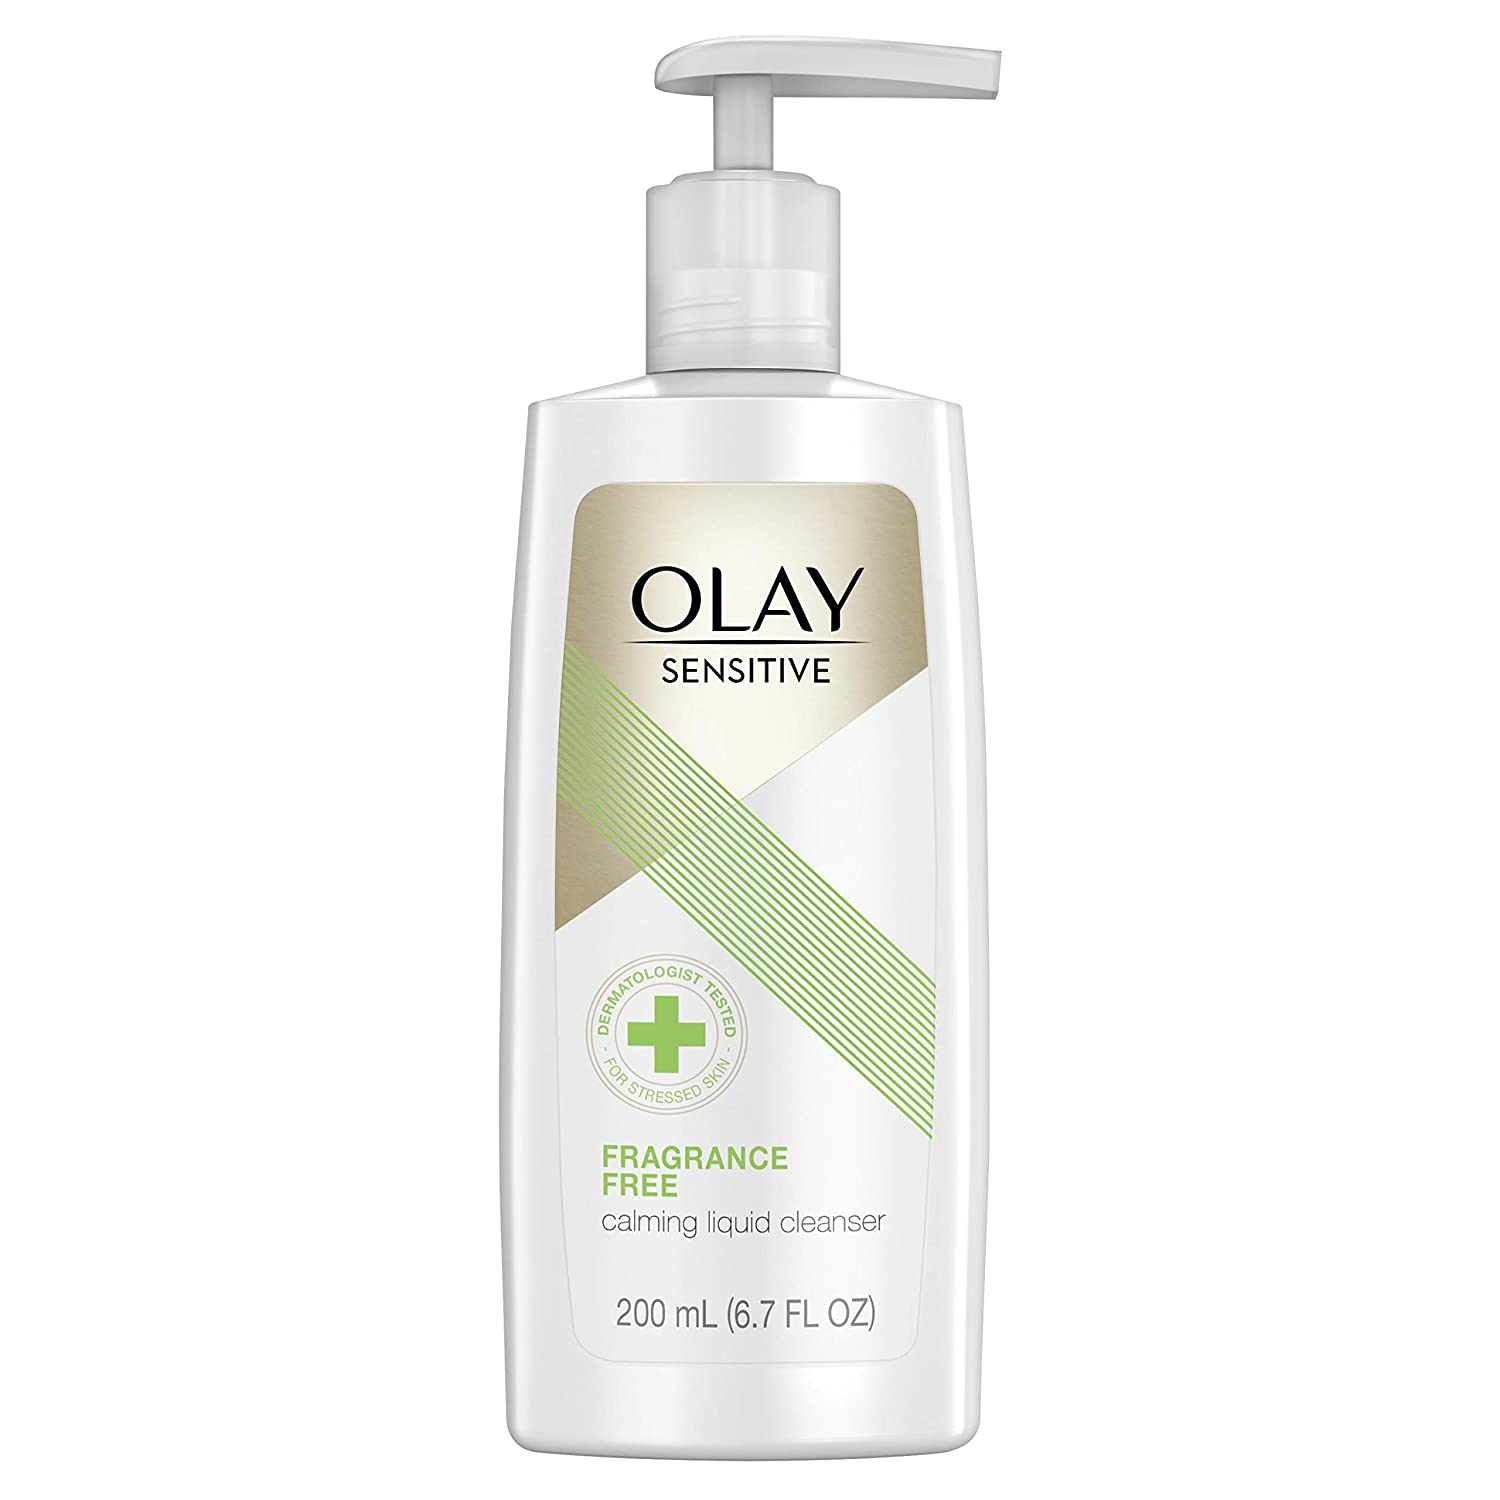 Olay Facial Cleanser for Sensitive Skin, Fragrance-free, 6.7 Fl Oz $2.30 with s/s